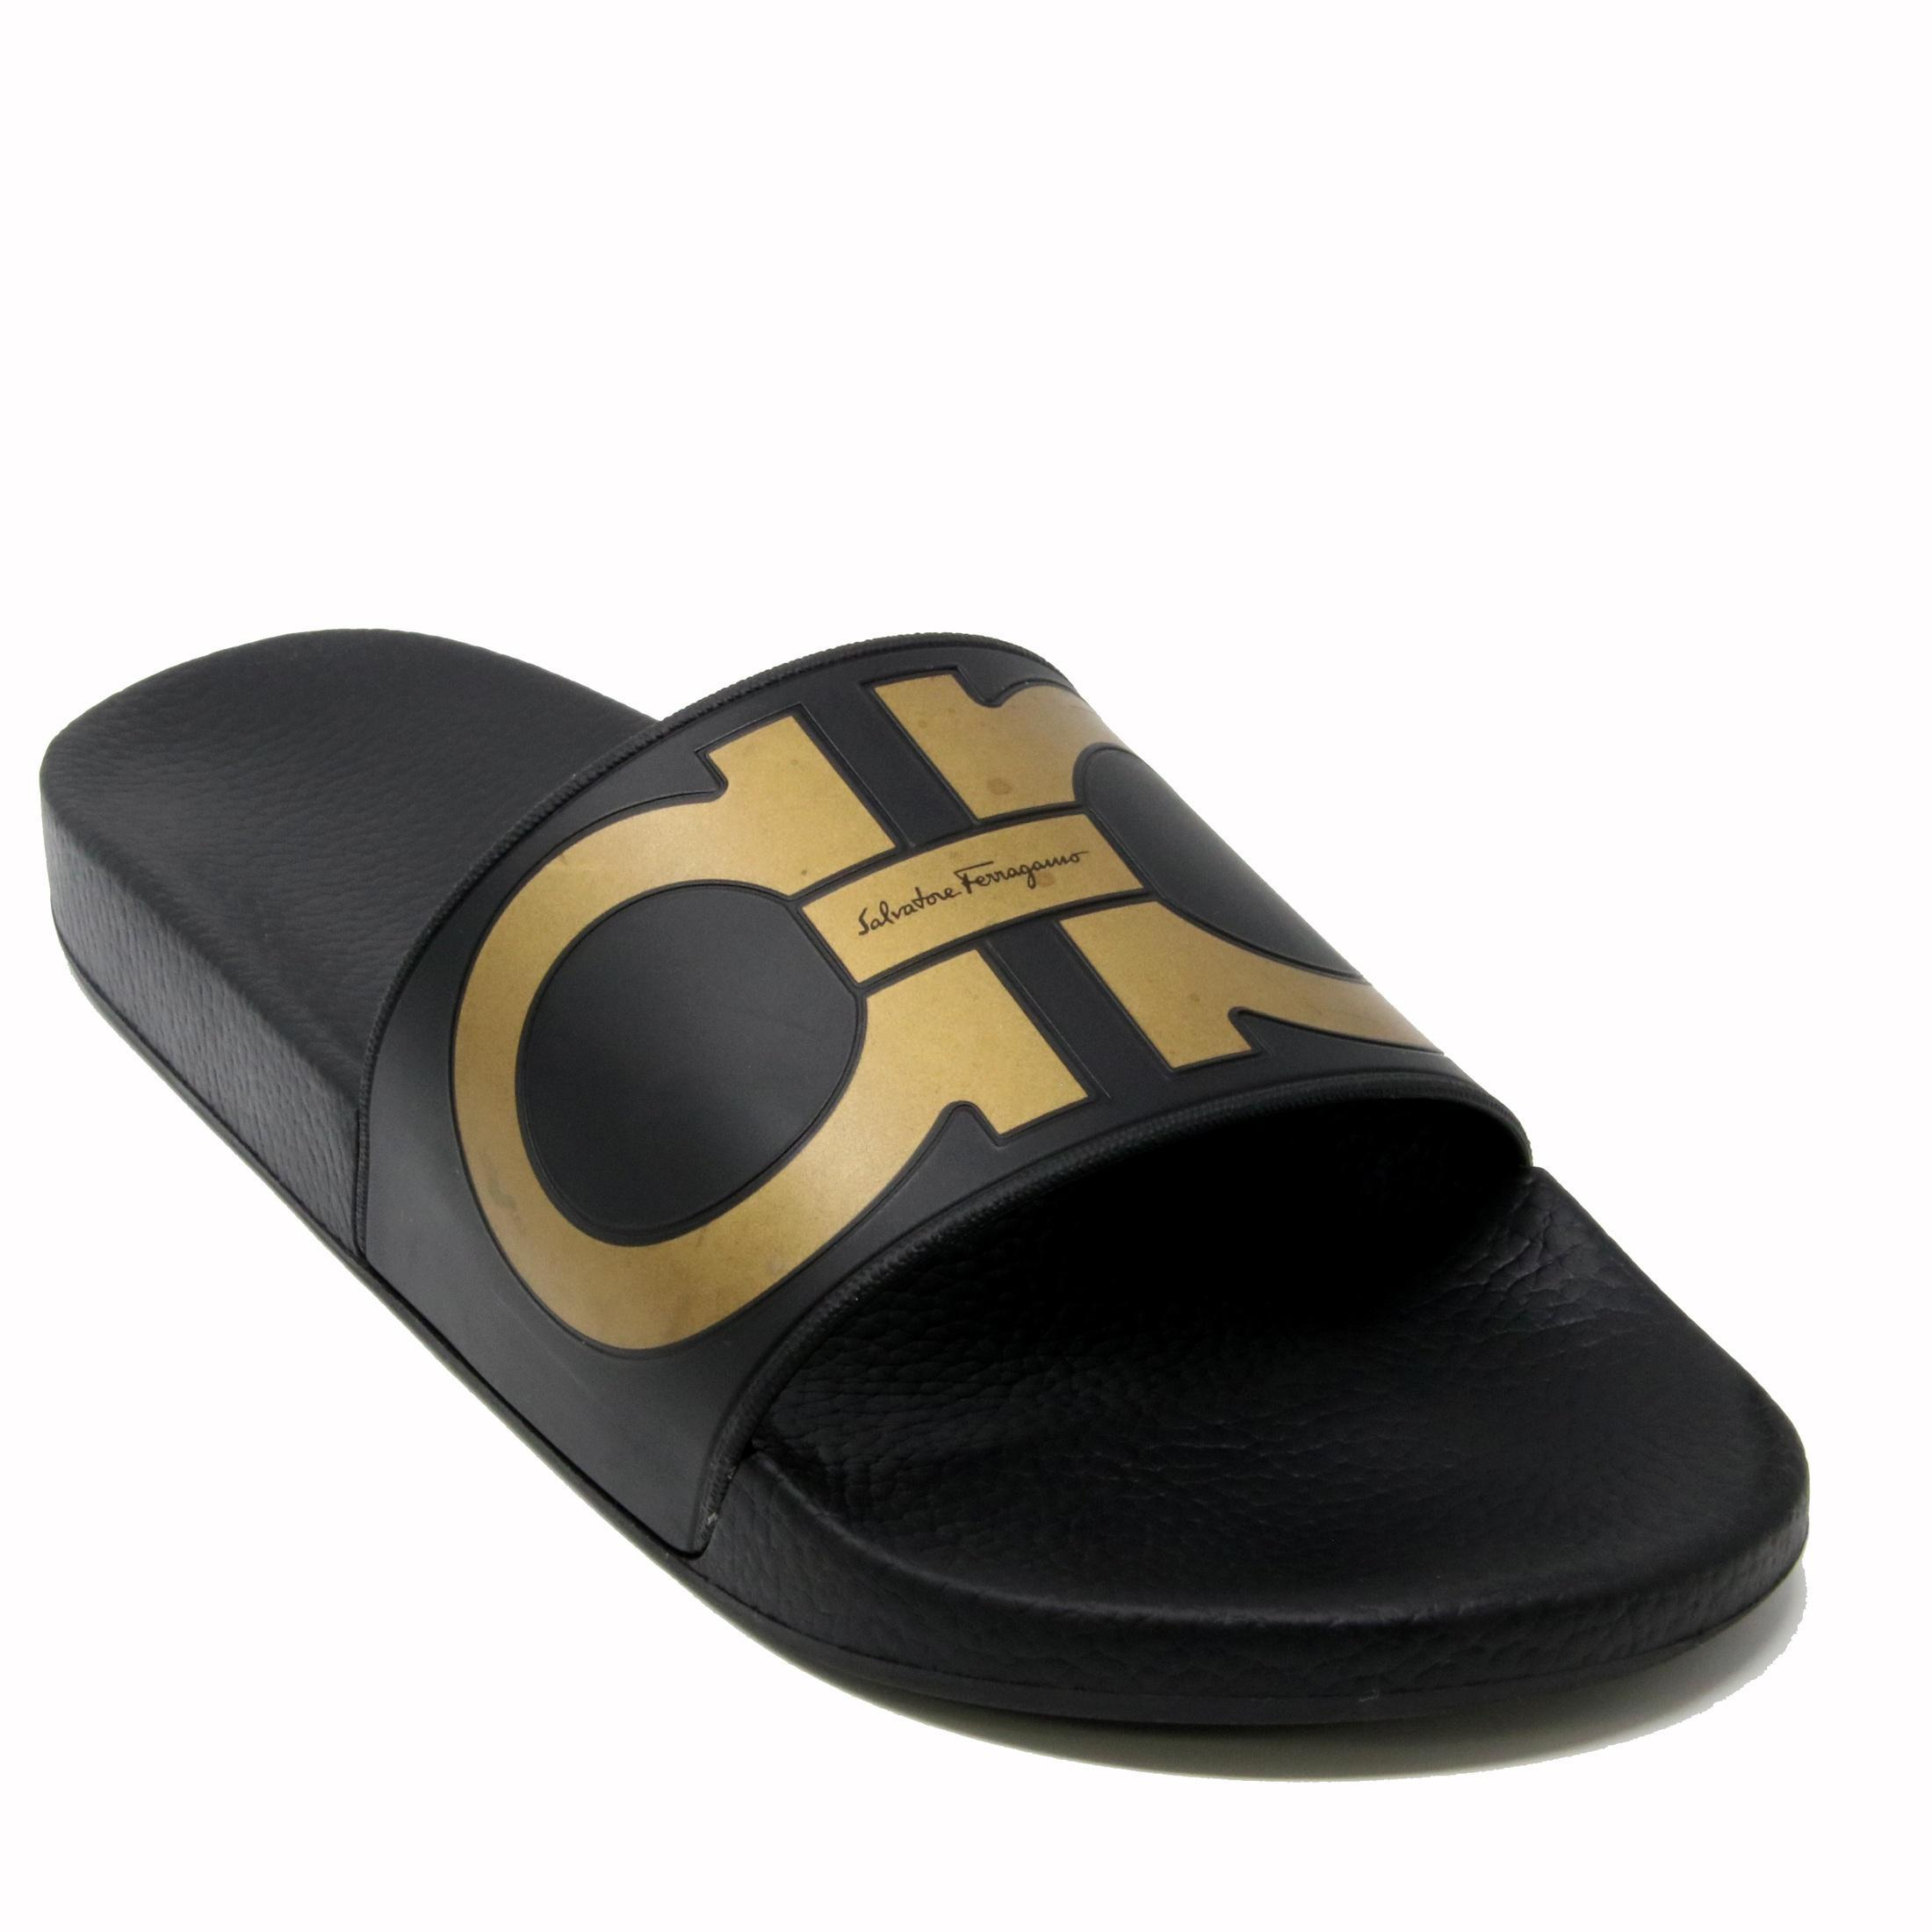 discount low cost Salvatore Ferragamo logo detail flip flops outlet shop for Manchester cheap price YD2ZeJE